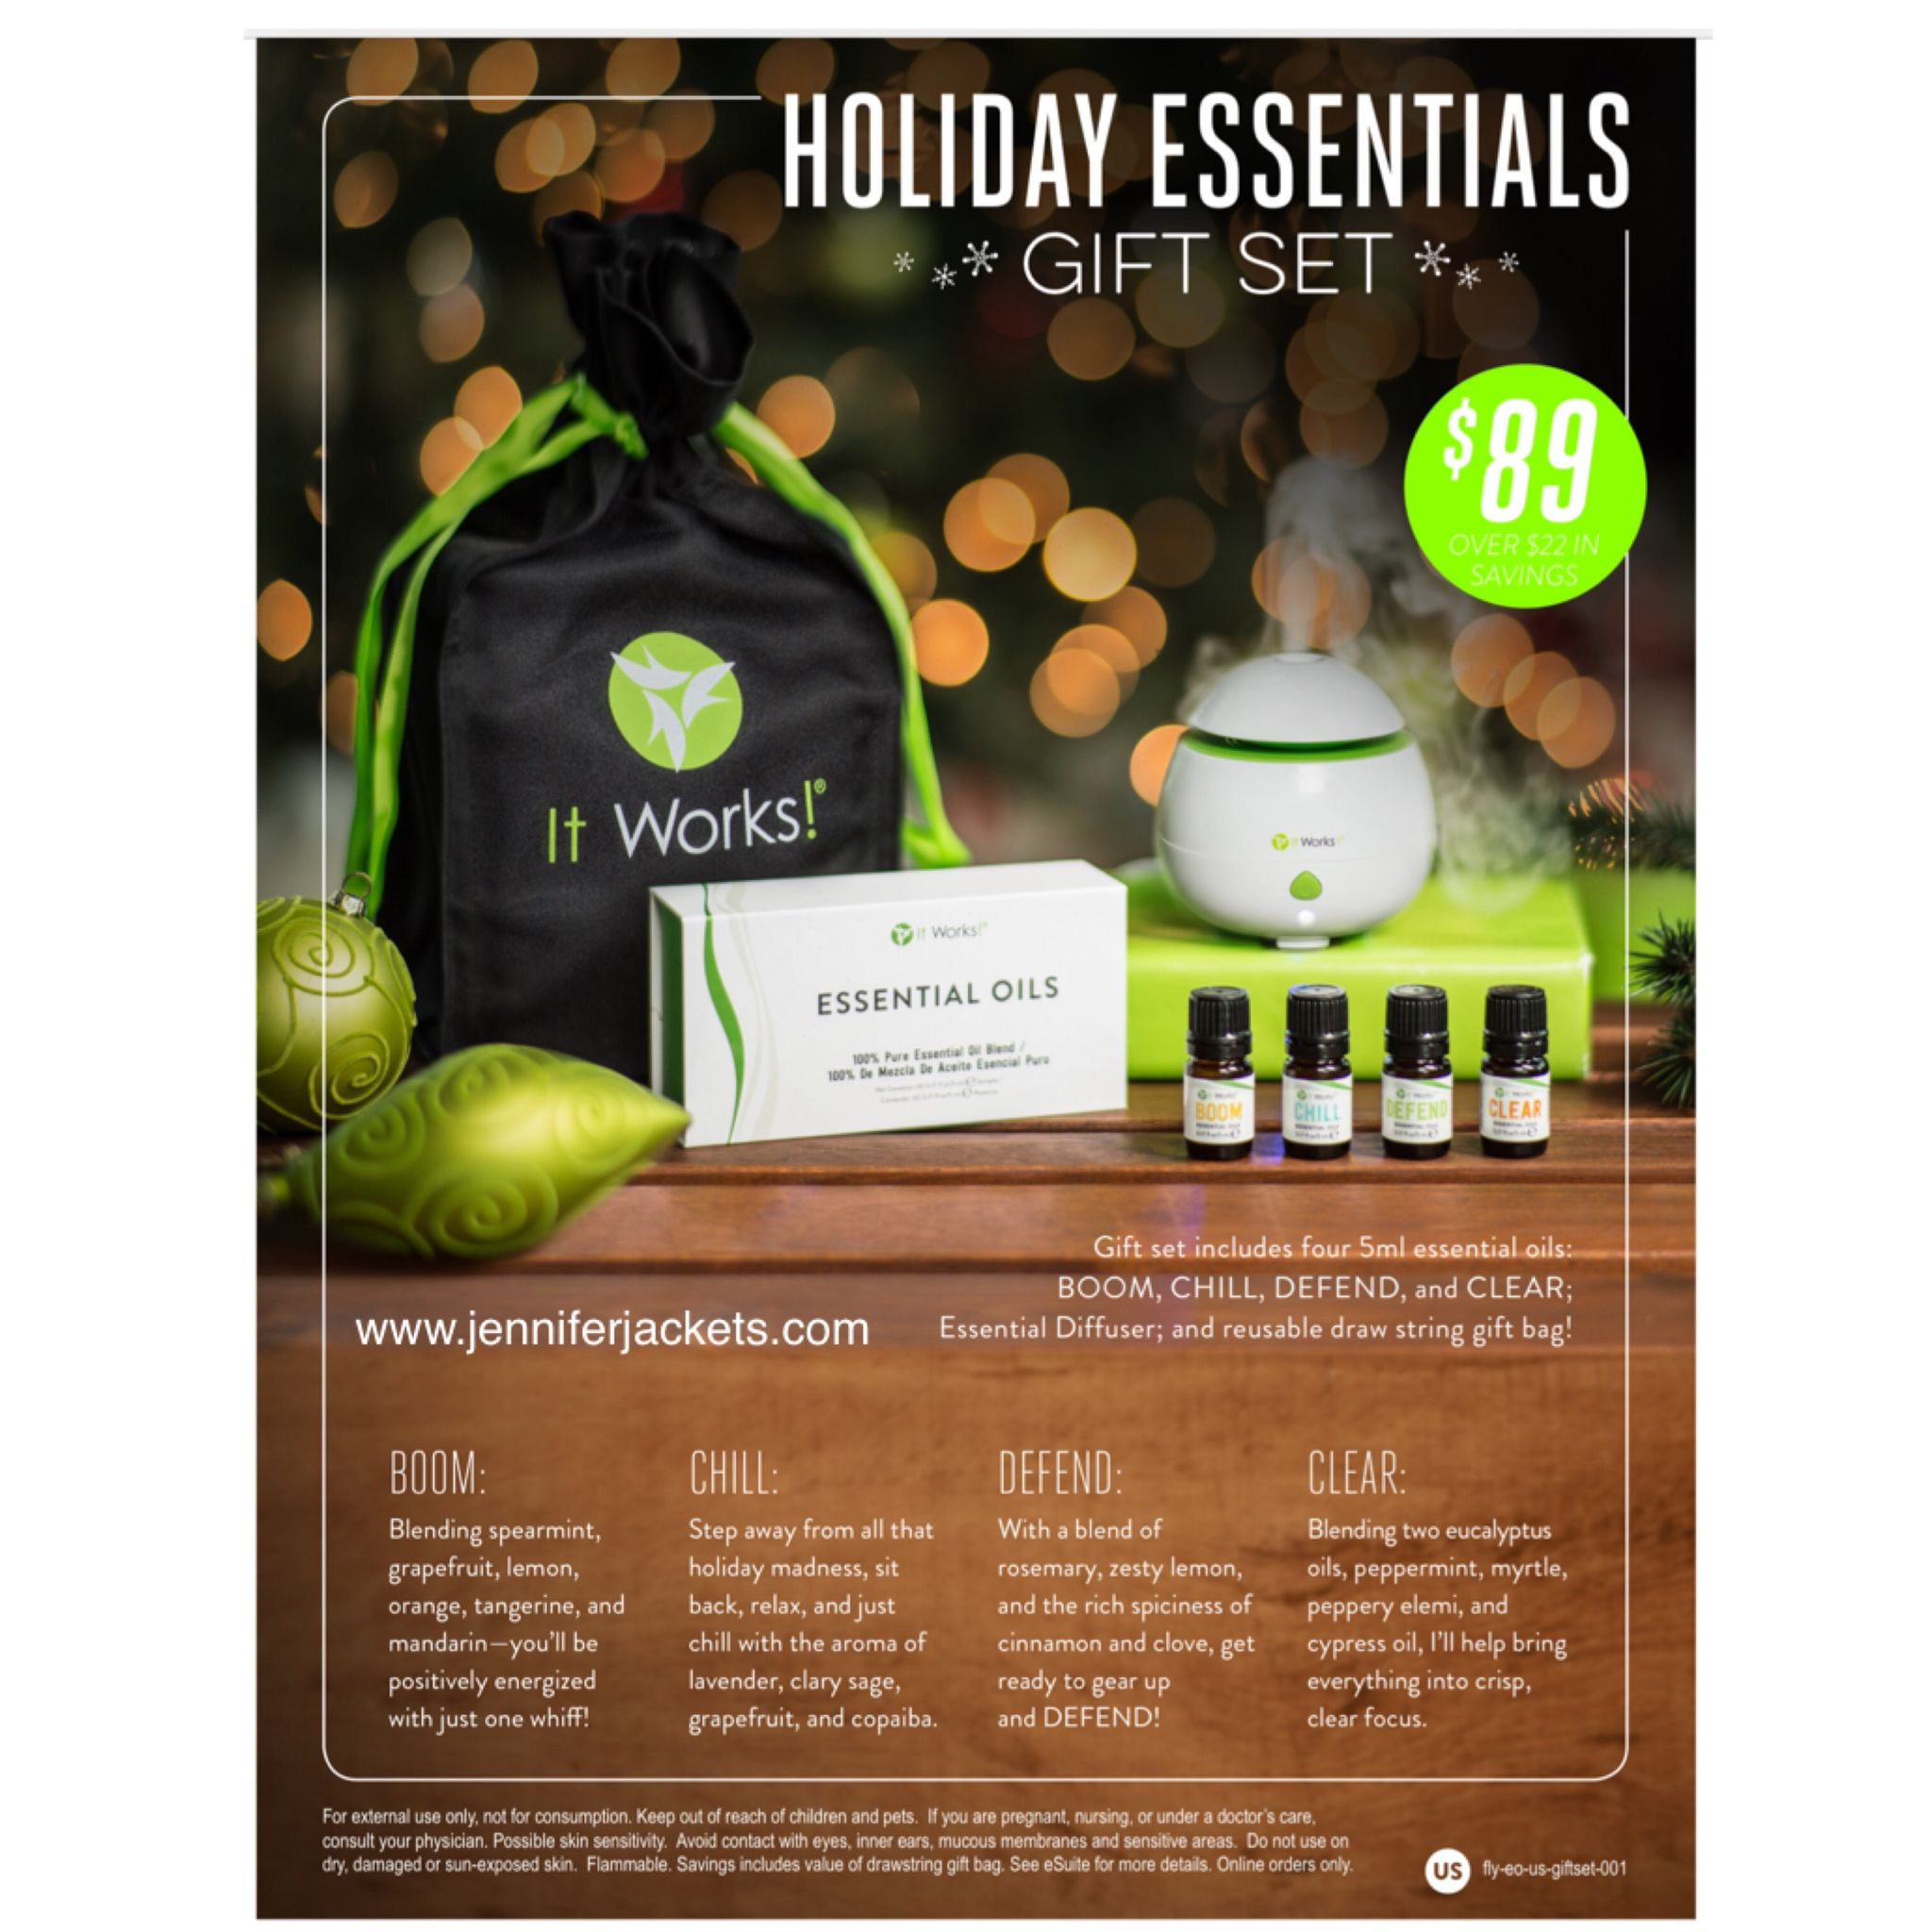 I am so stinking excited!!!!! I just got mine ordered! Did you know⁉ While the It Works! Essential Oils line may be new, we're not new to essential oils‼ You'll find essential oils used throughout our Body and Skin lines  including rosemary ❤and eucalyptus  oils in That Crazy Wrap